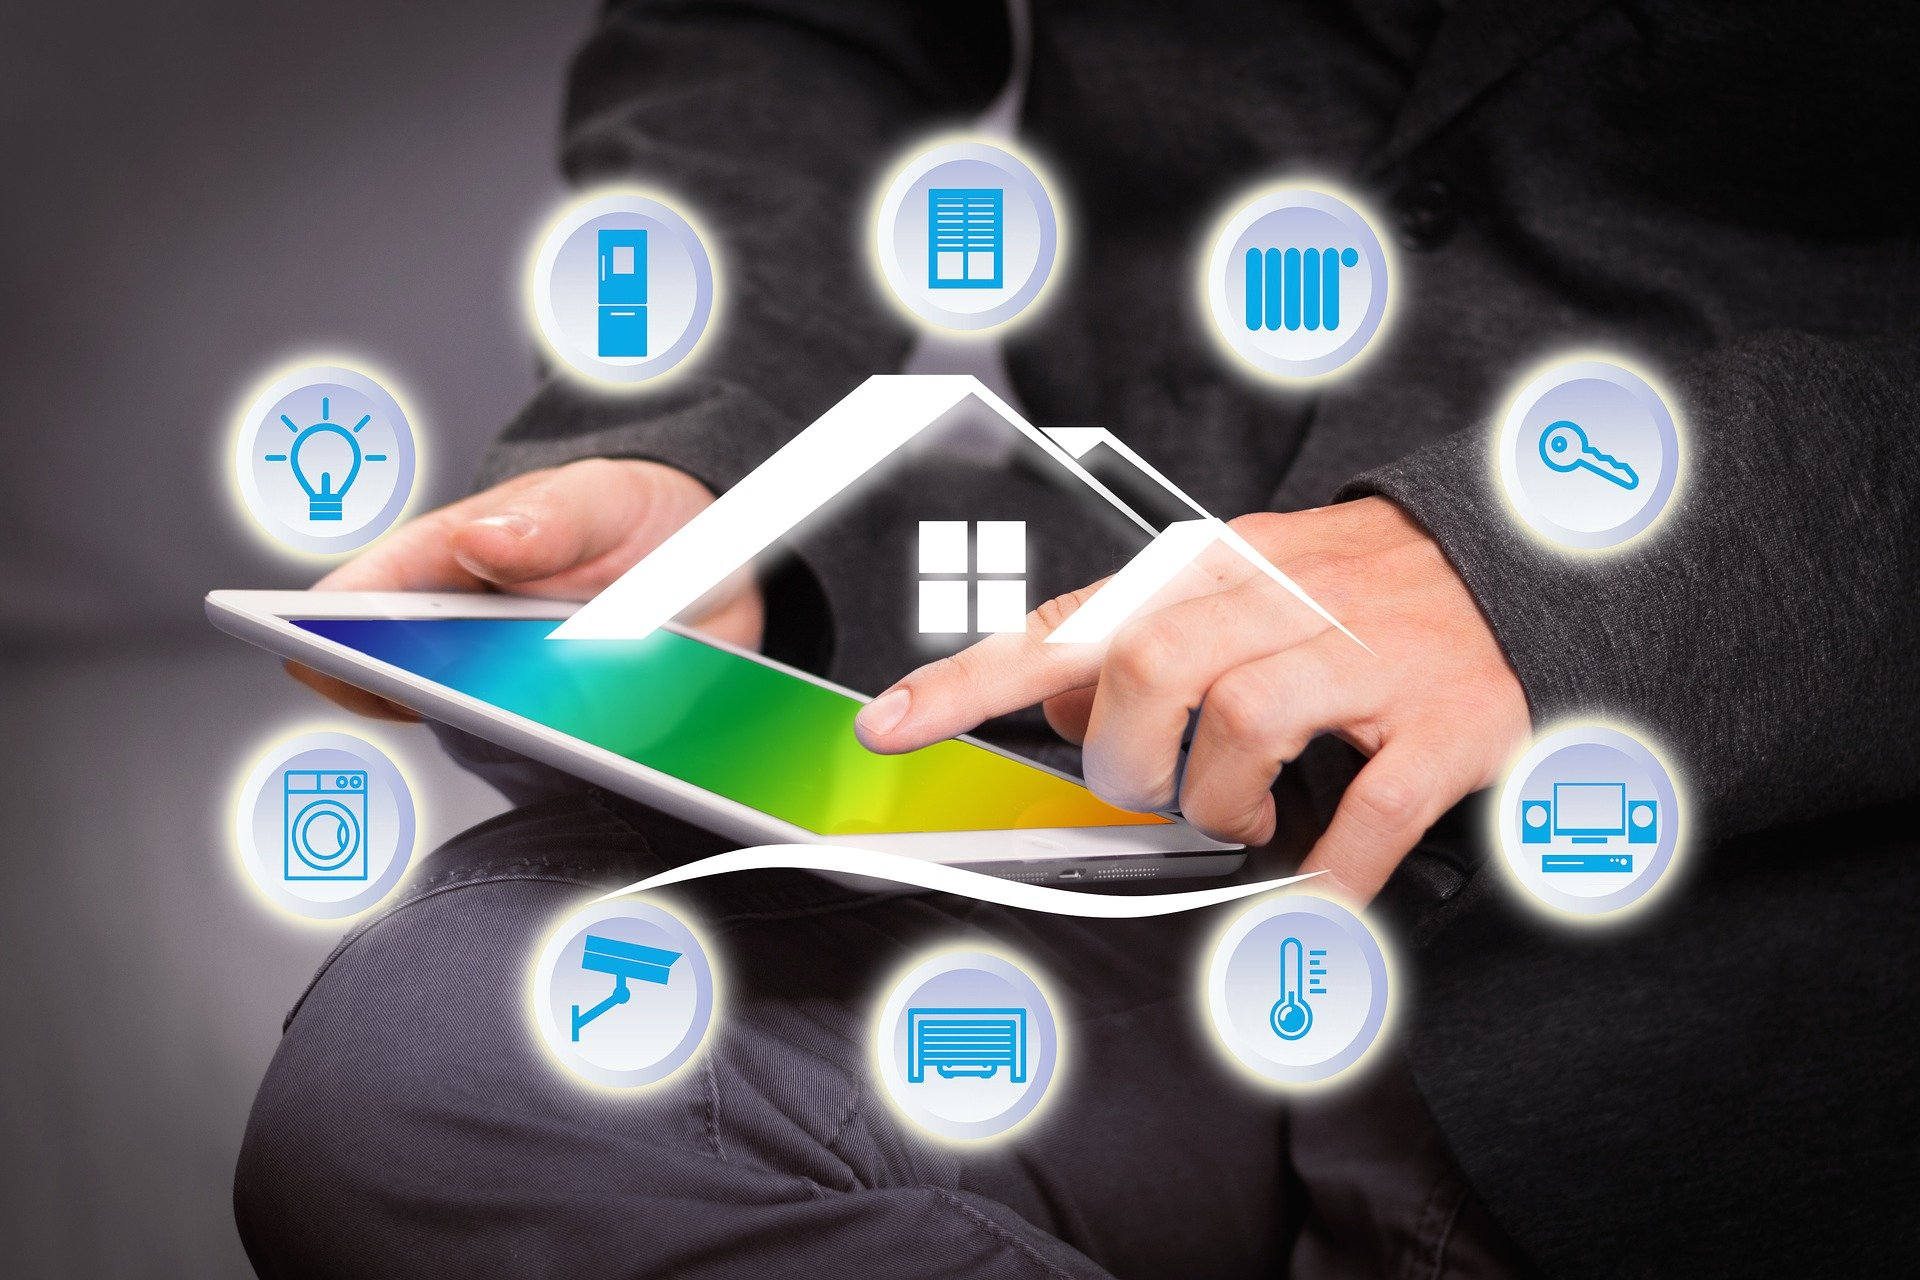 Building/Home Automation